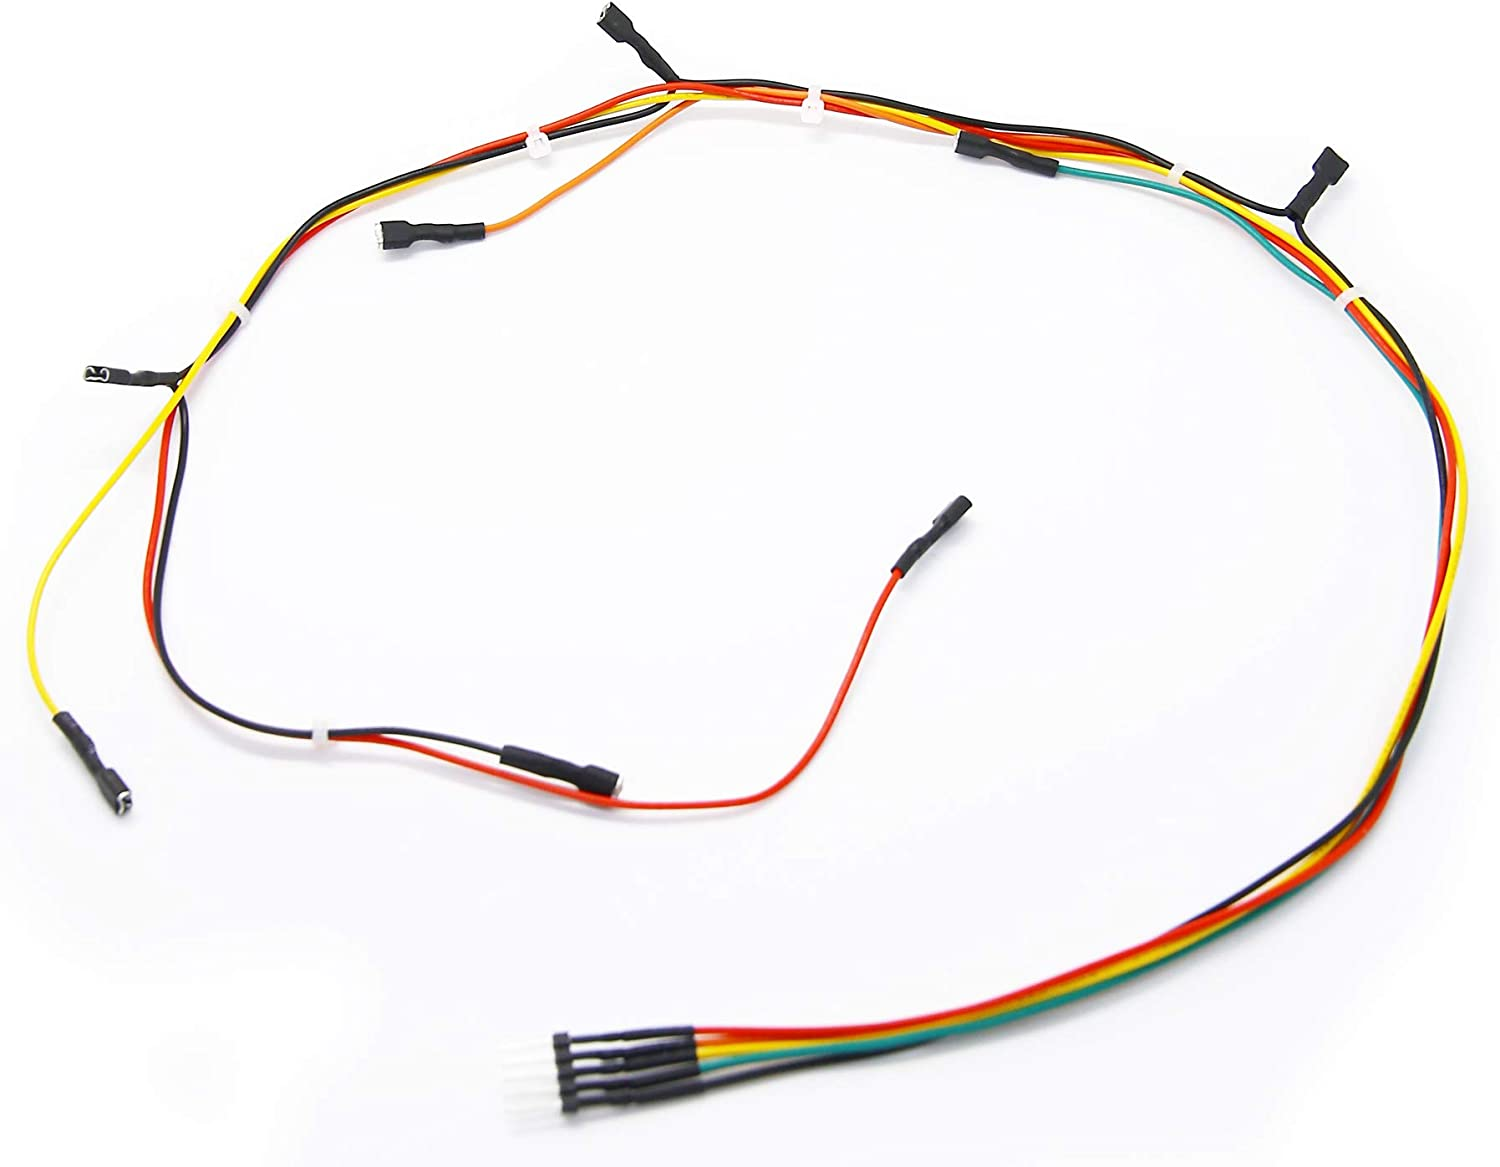 80cm 187 to 5pin Conversion Harness 31inch